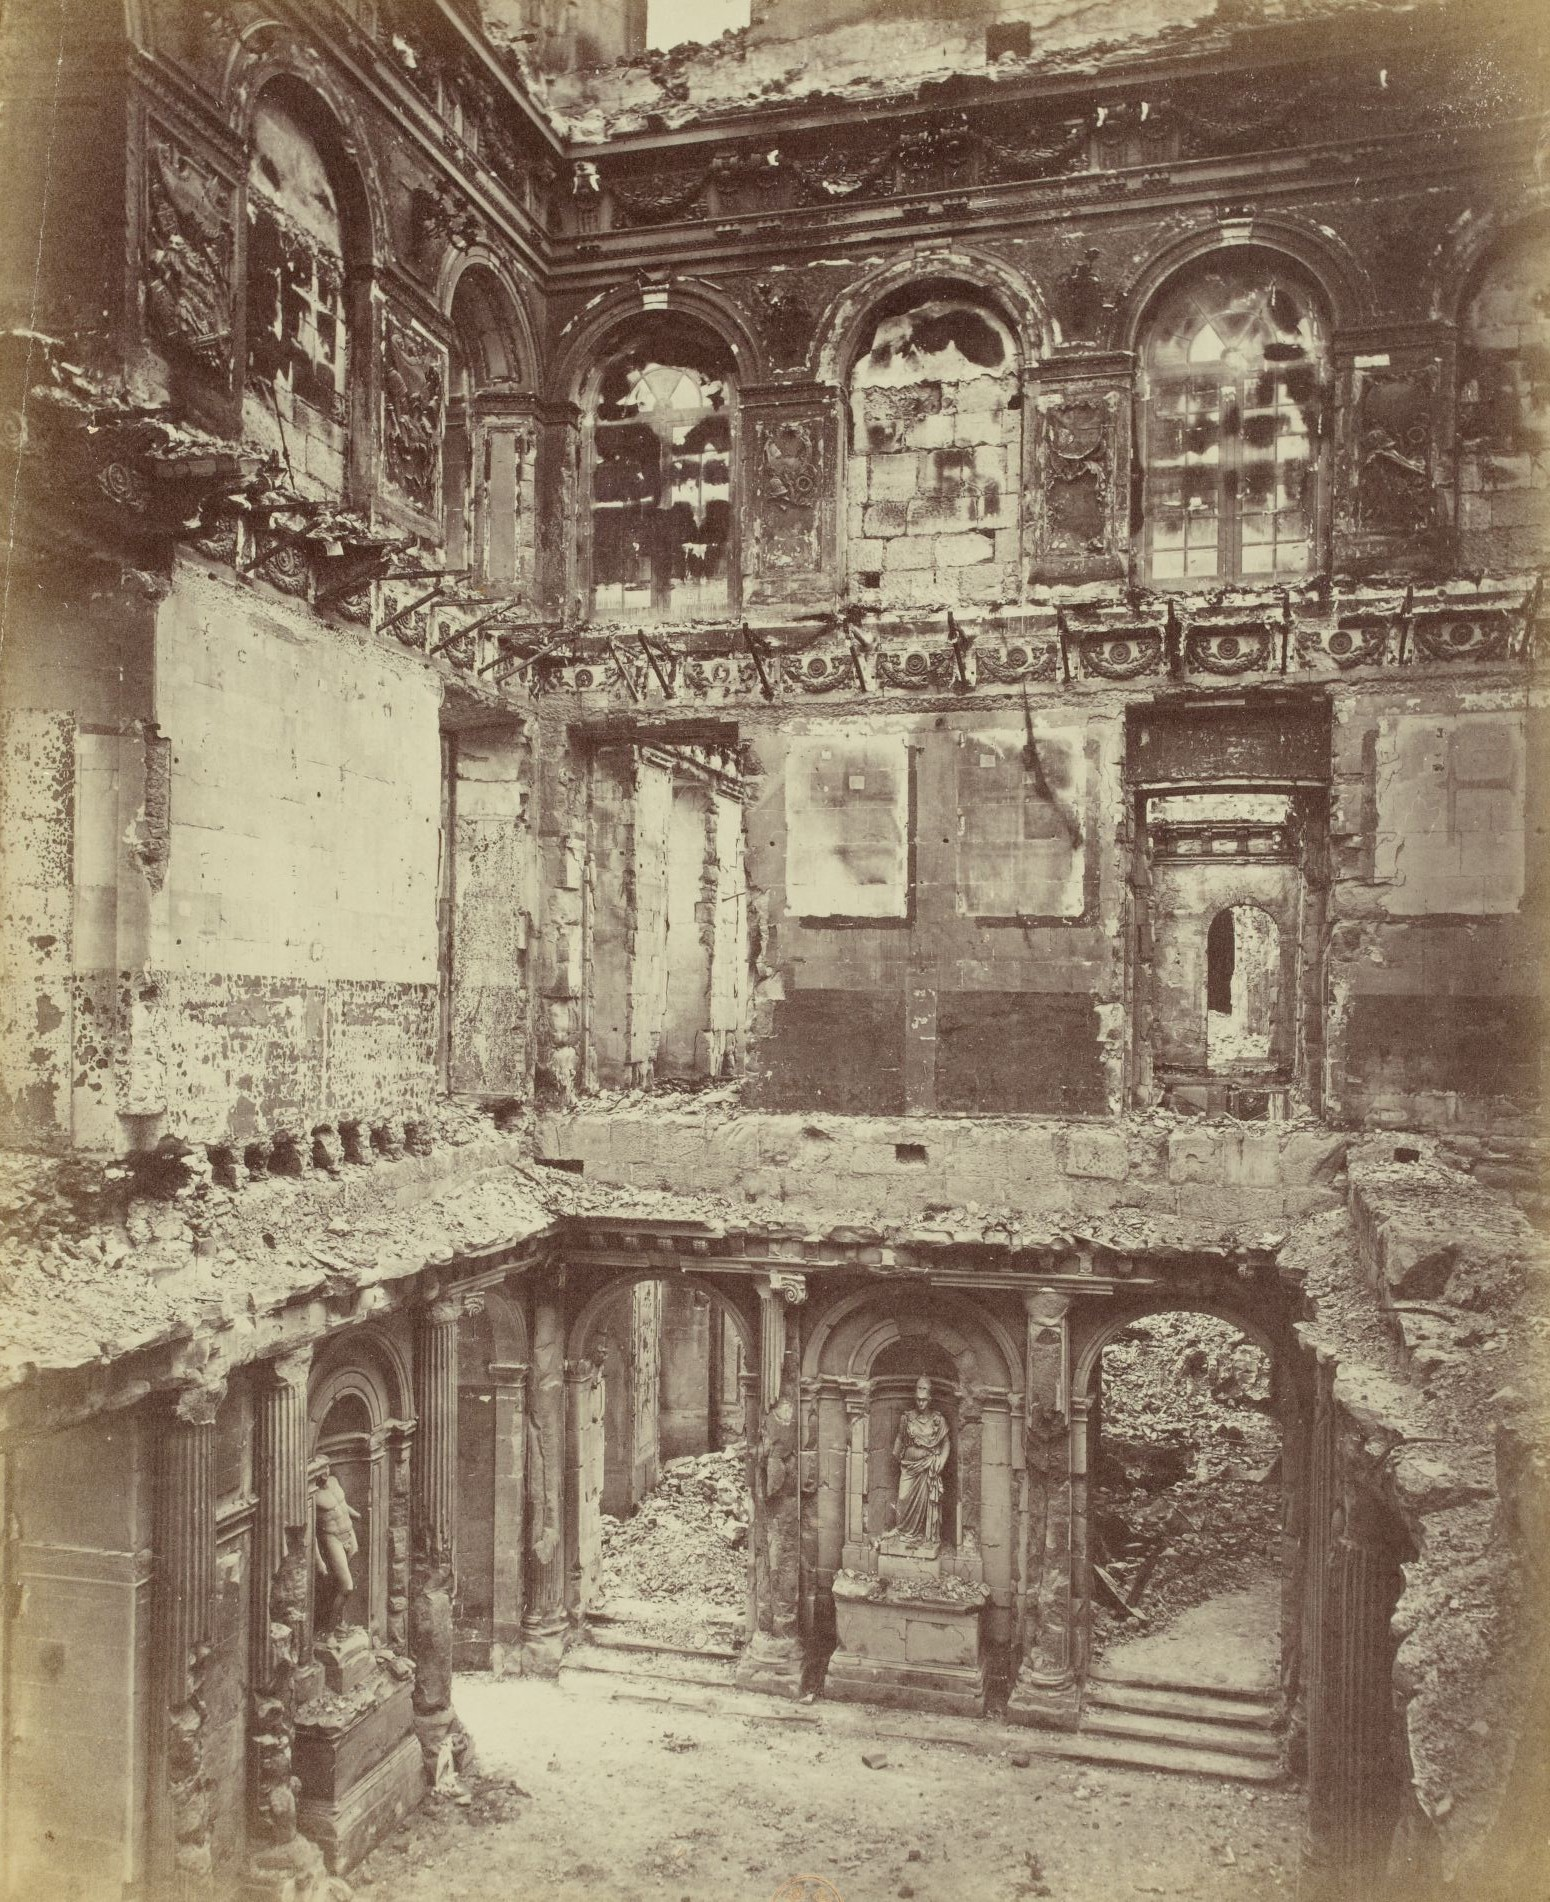 18 mars 1871 - Début de la Commune de Paris Photo-ruine-hotel-de-ville-commune-paris